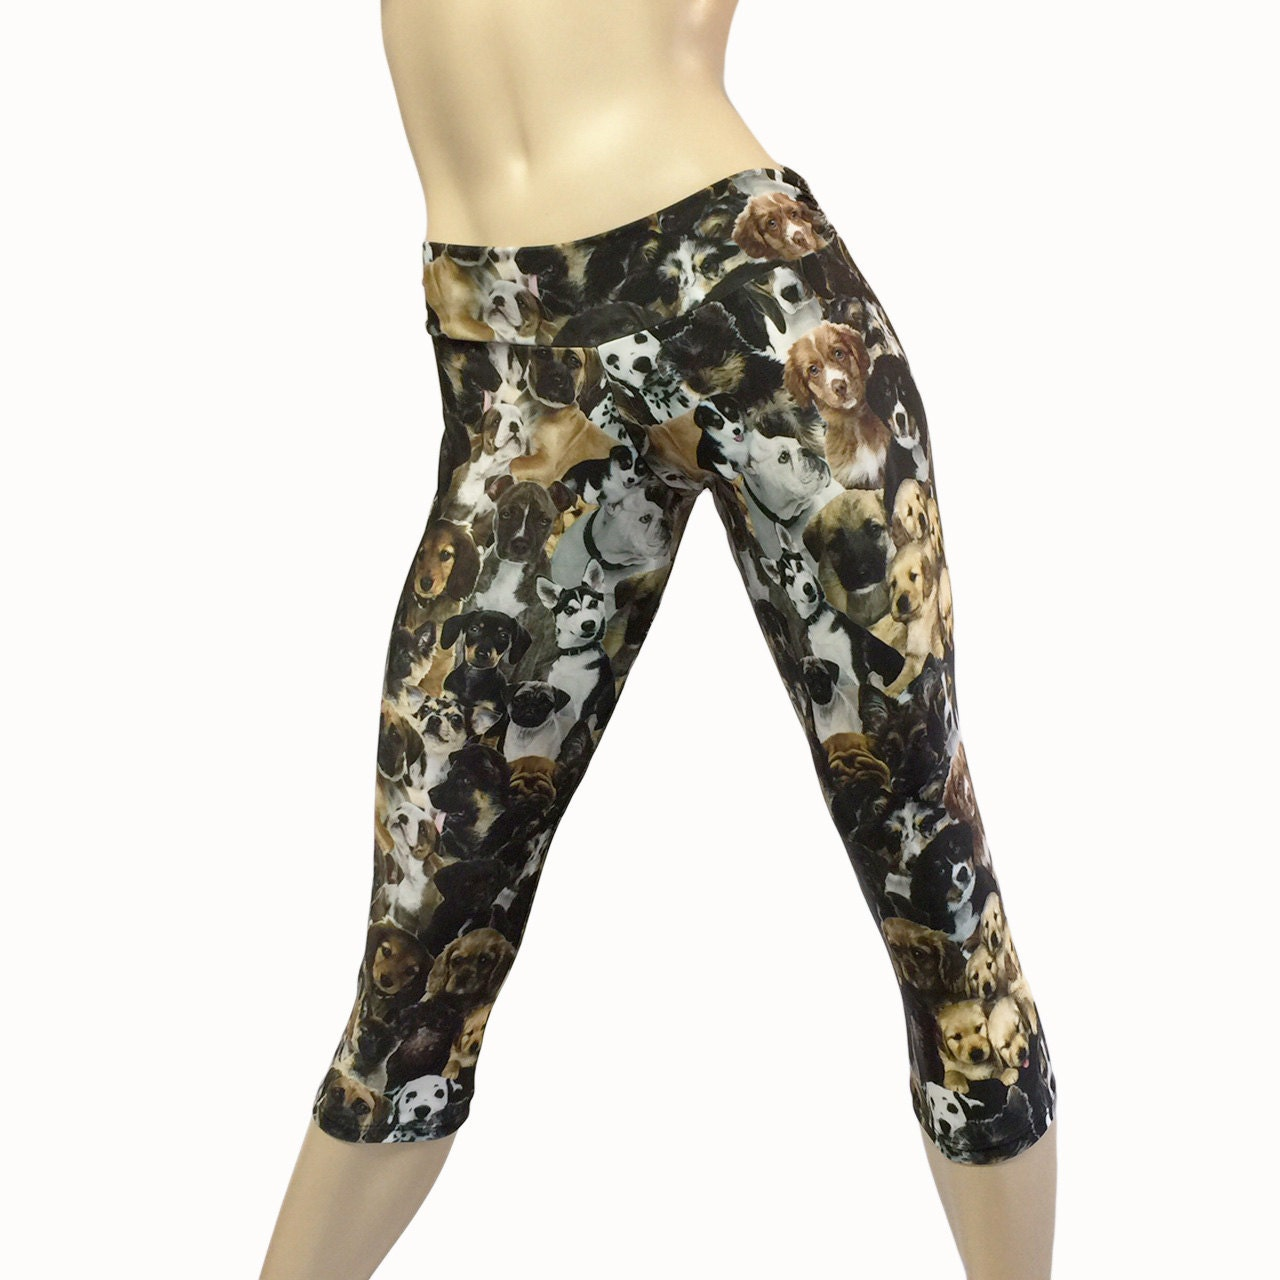 Yoga Pants Workout Clothes Hot Yoga Fitness Puppy